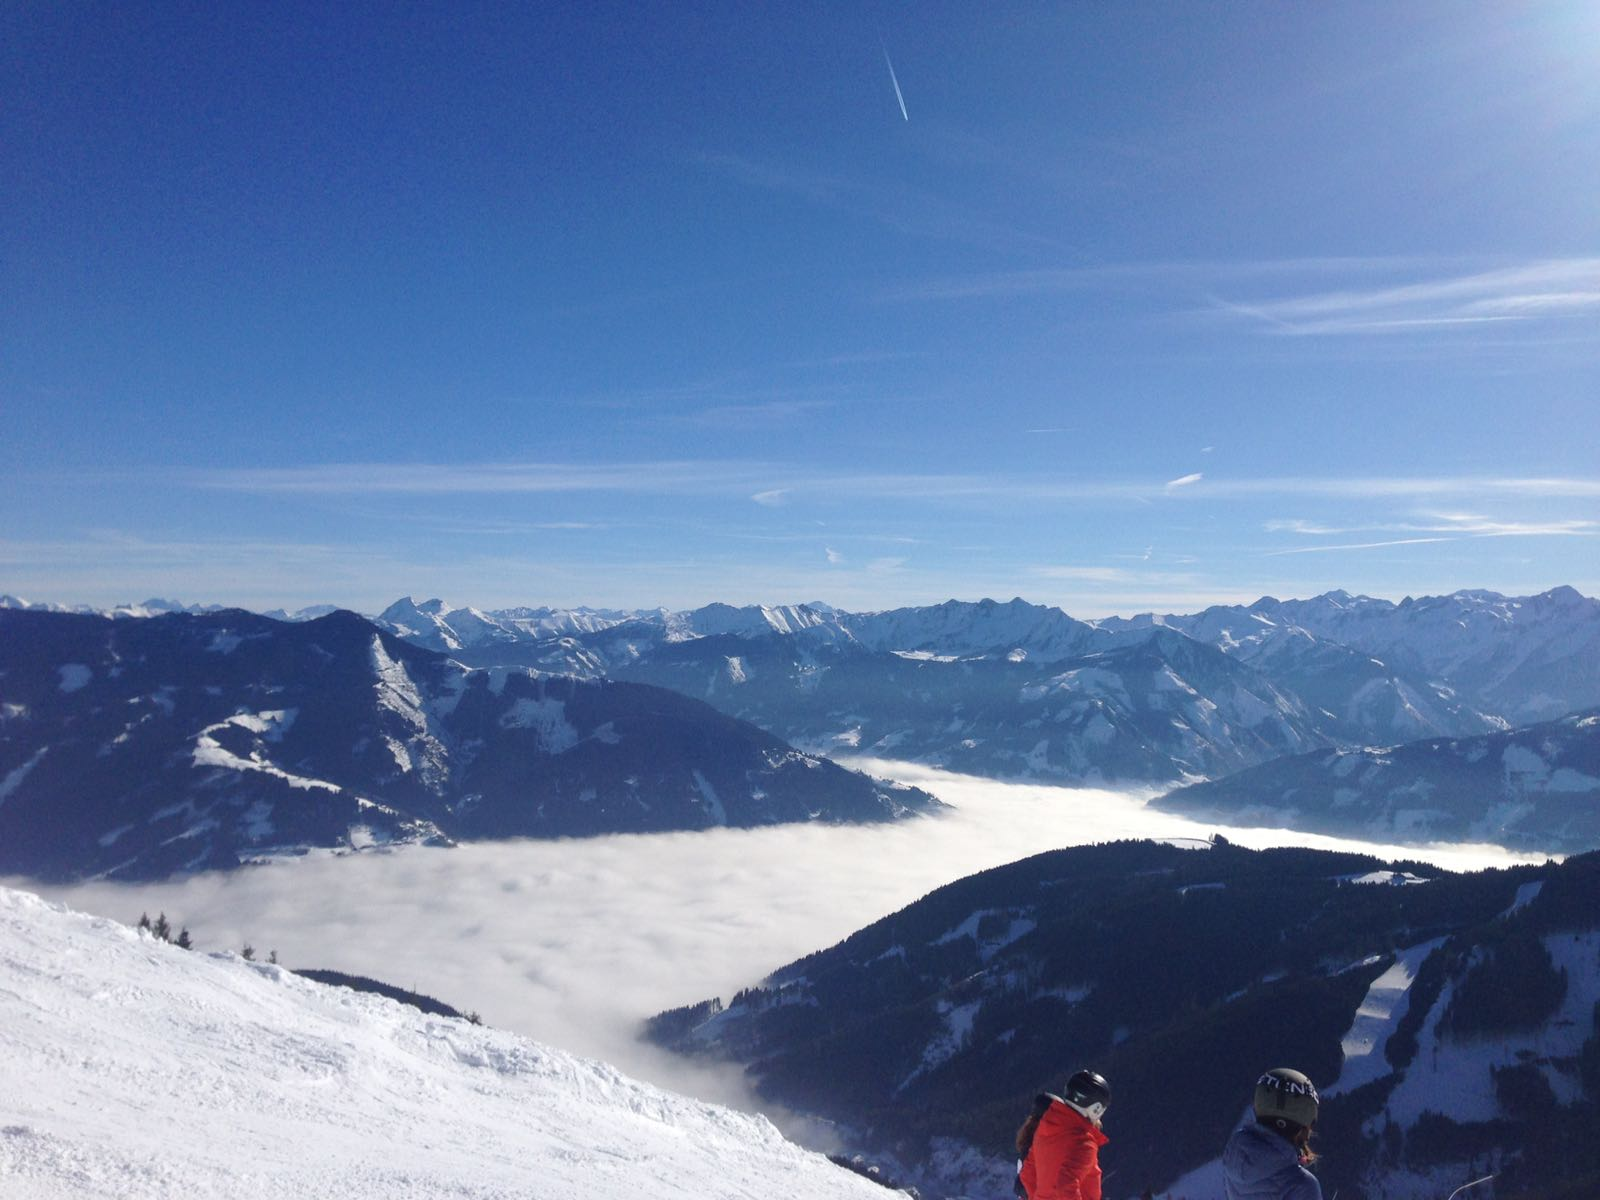 View of Zell am See